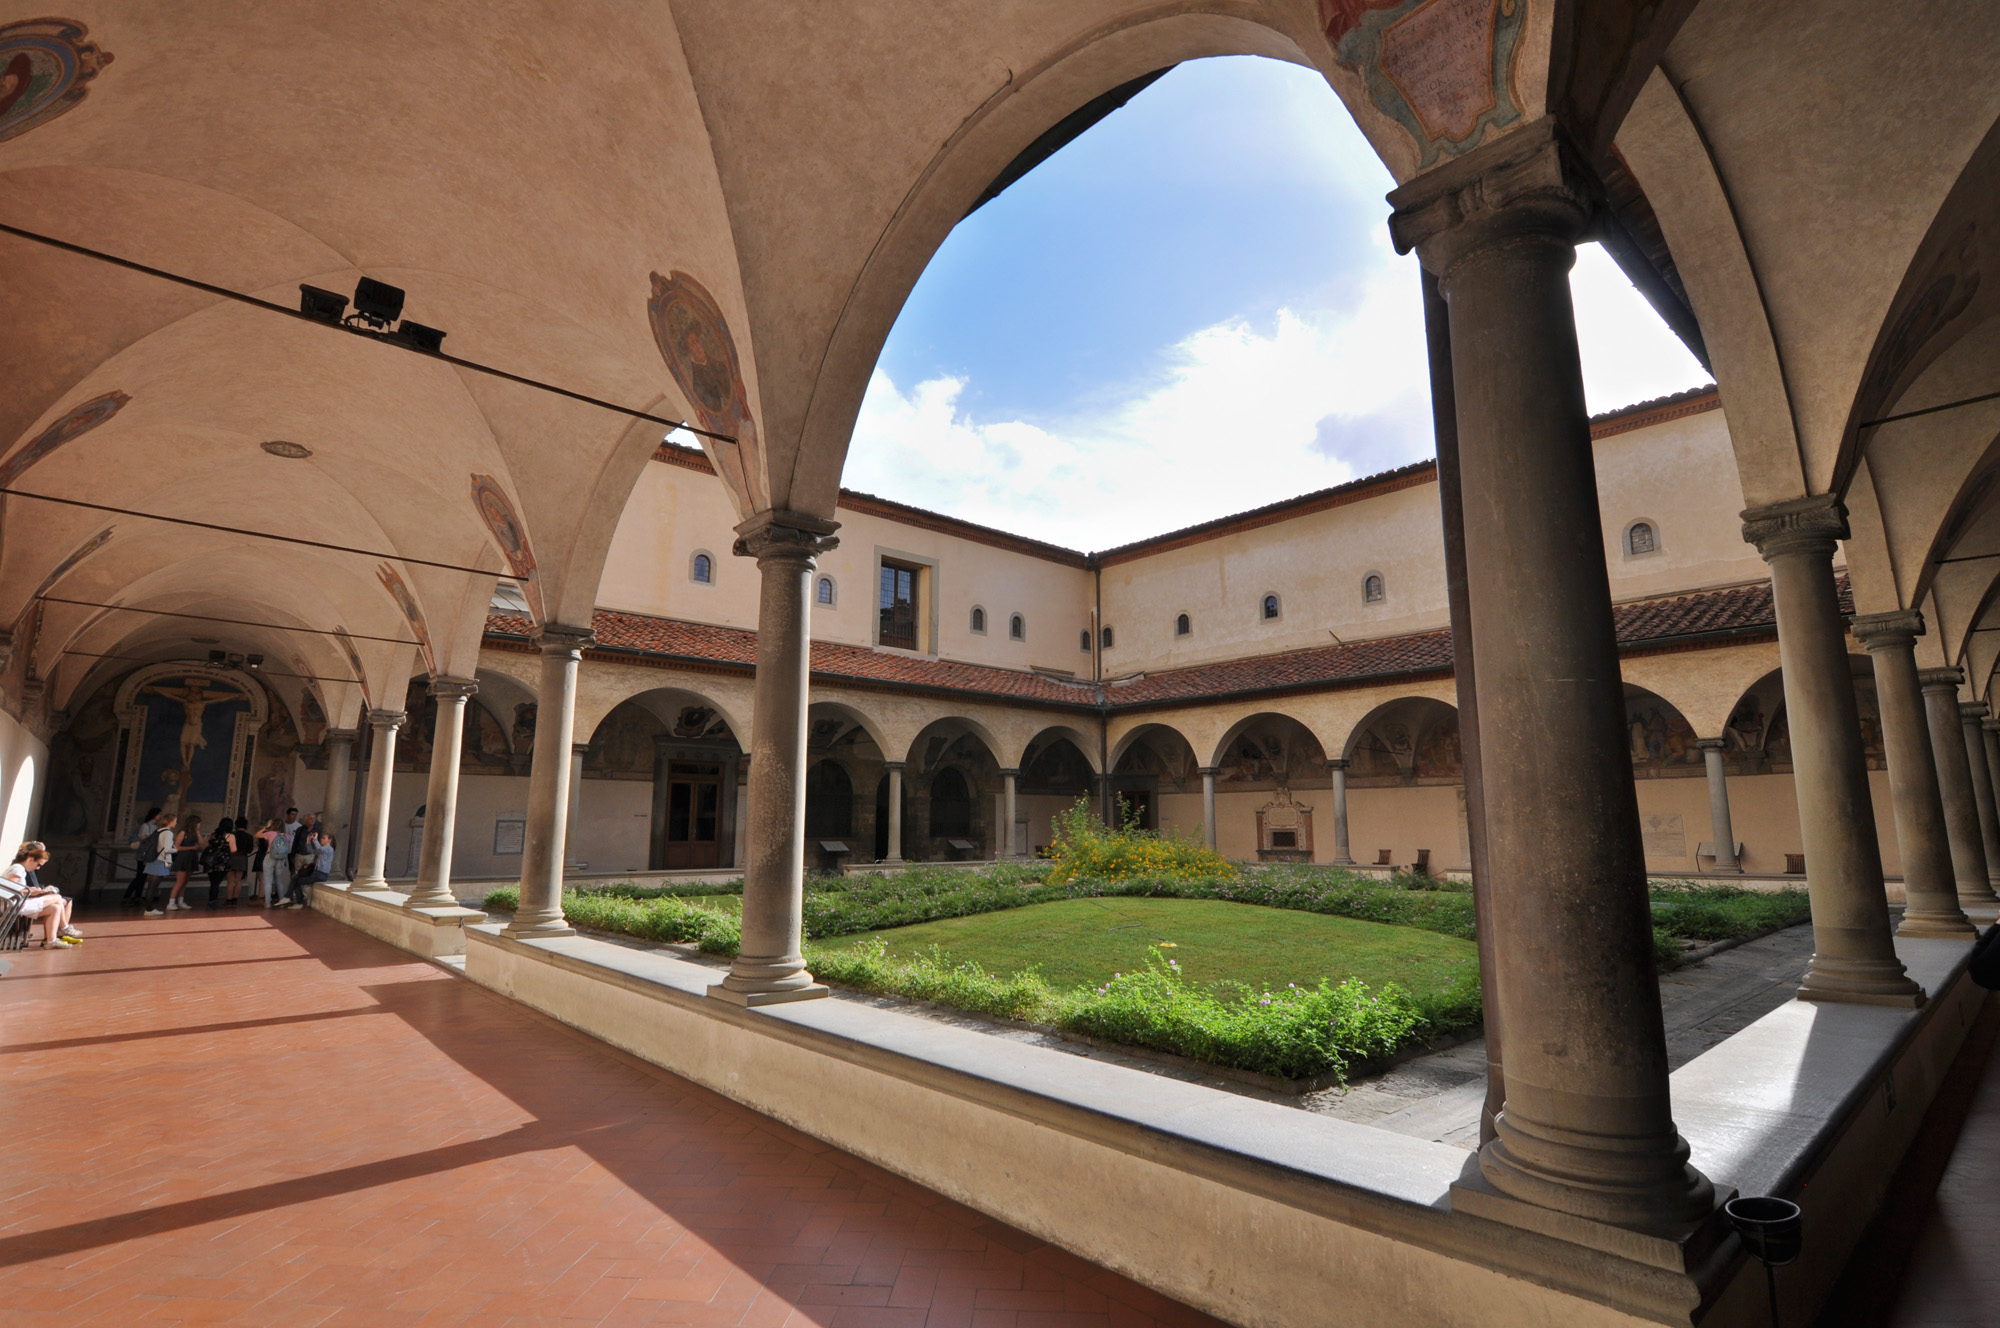 Courtyard of San Marco